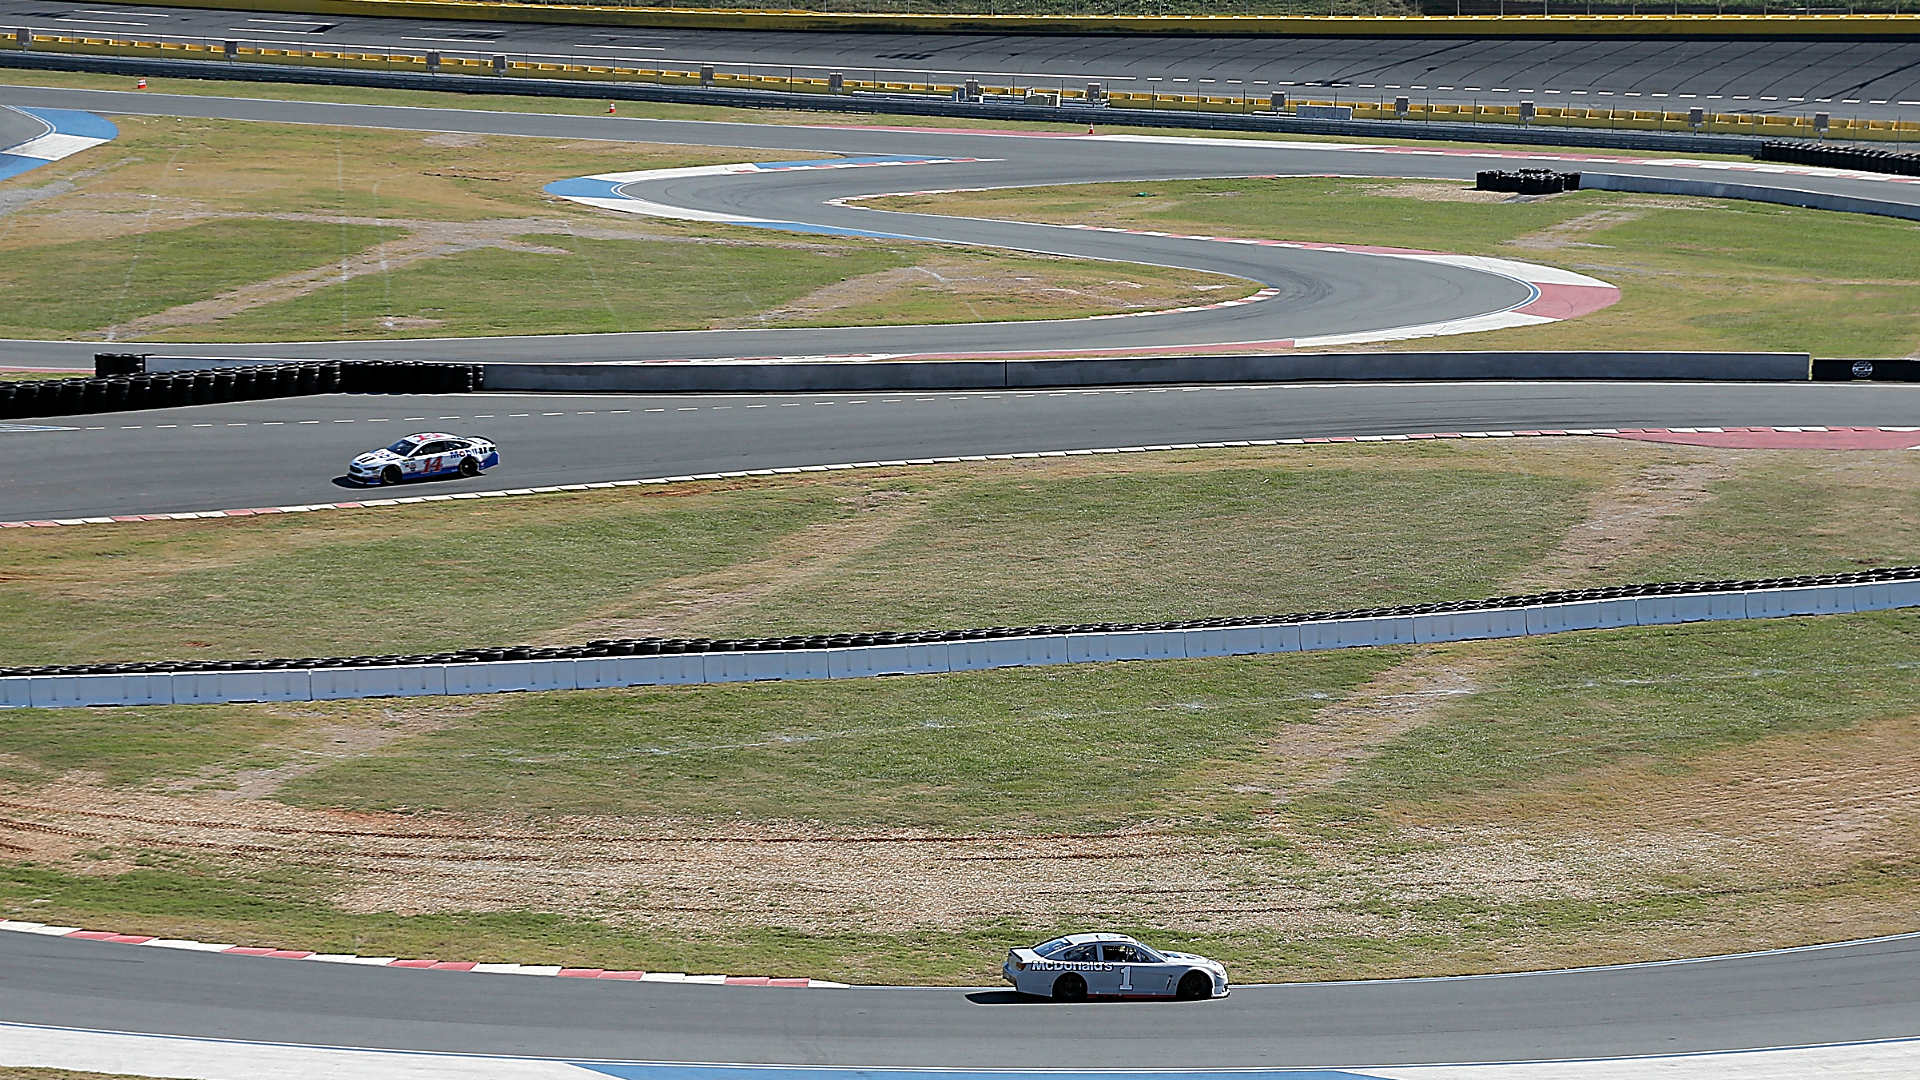 Charlotte Motor Speedway road course layout is now faster after modifications